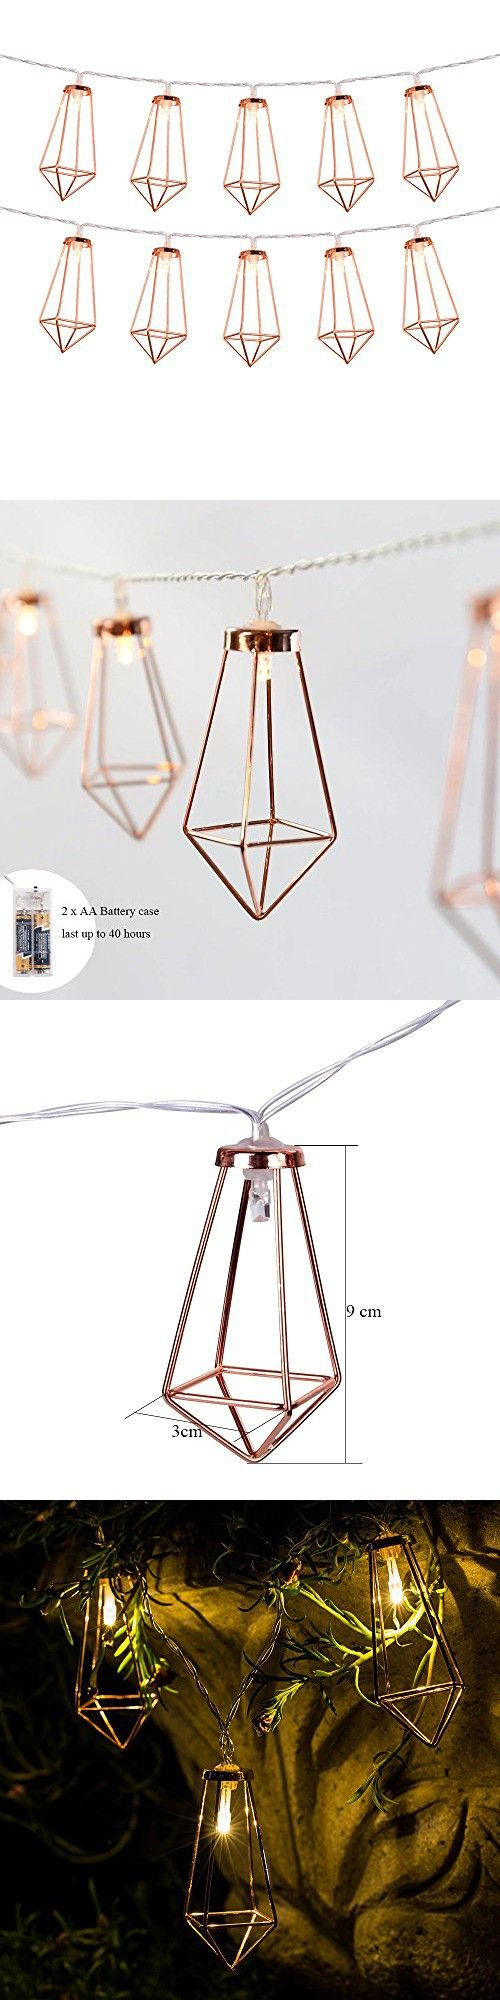 Omika Rose Gold Geometric Exclusive Led Fairy Lights, Battery Powered, Boho Metal Led Lantern String Lights – Perfect for Multipurpose use, 10 lights (5ft/1.8m Warm White)